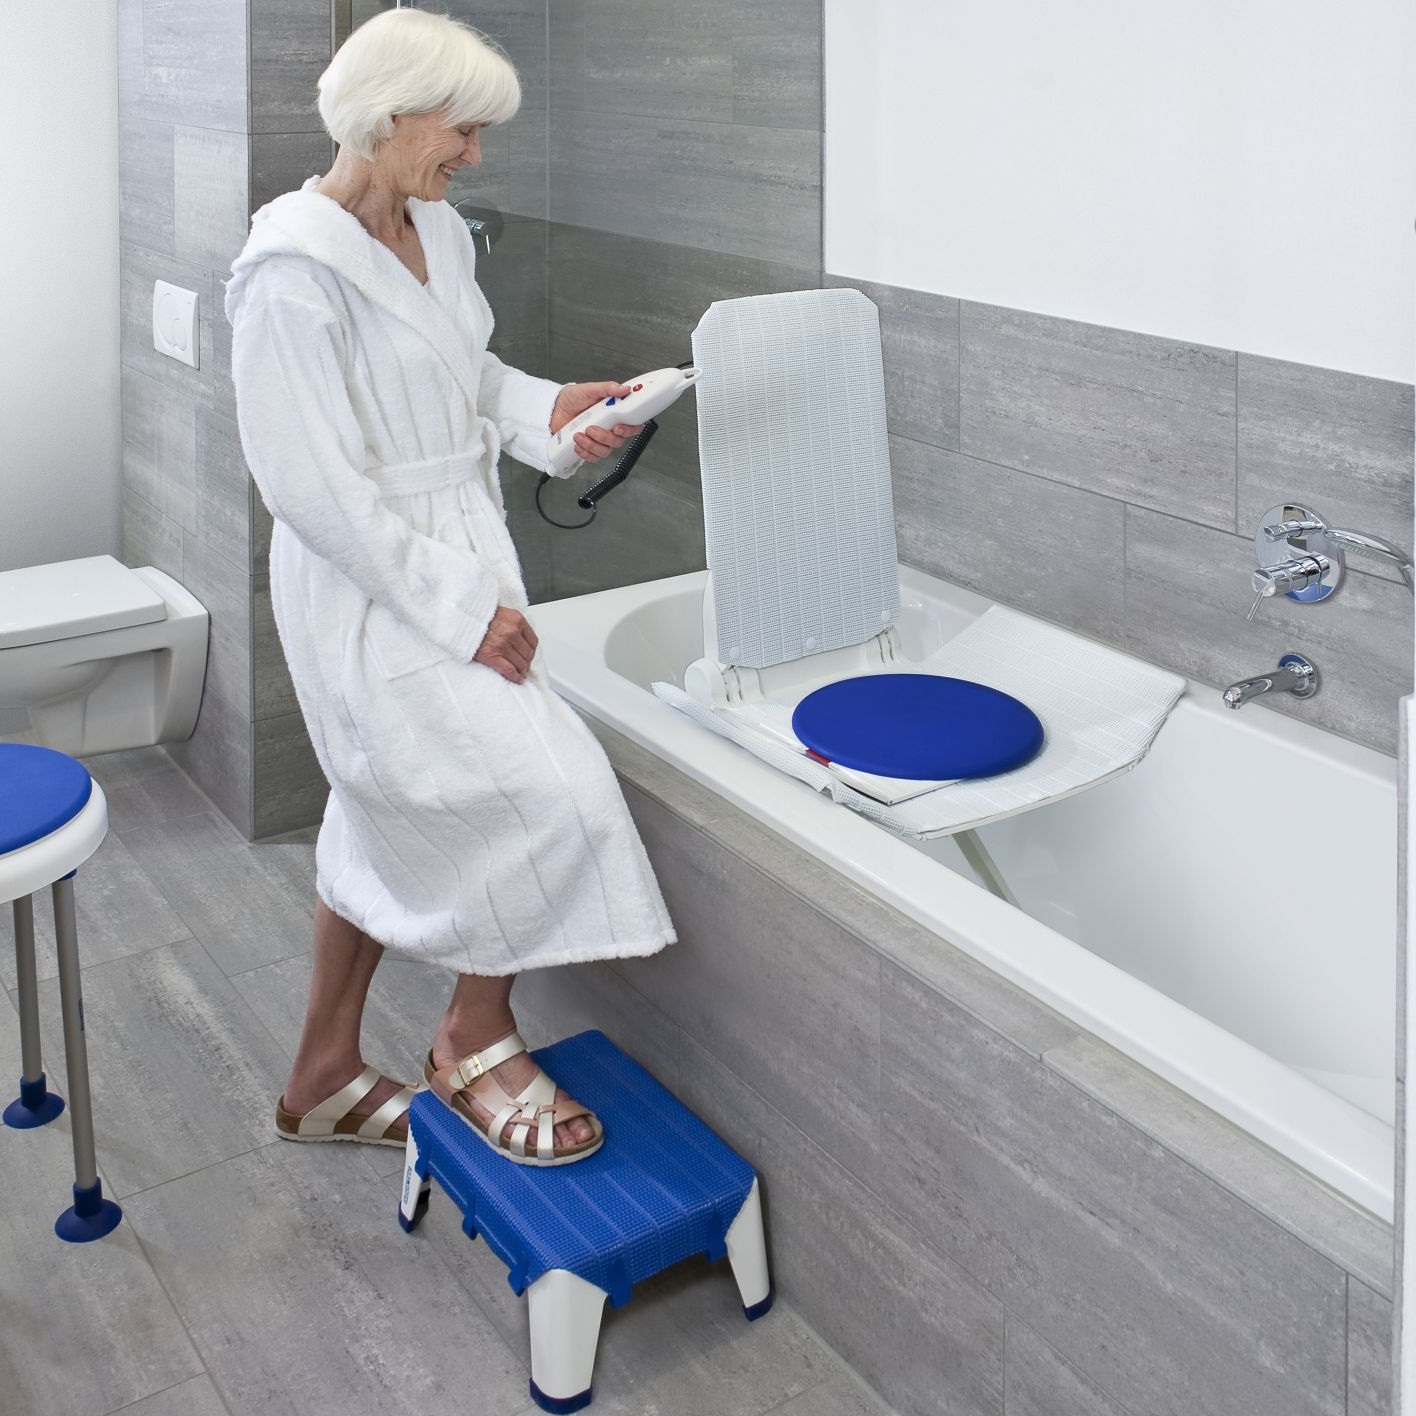 Bath Lifts - 1 year guarantee on all Bath Lifts Covering you for quality, reliability, ease of use, and safety.